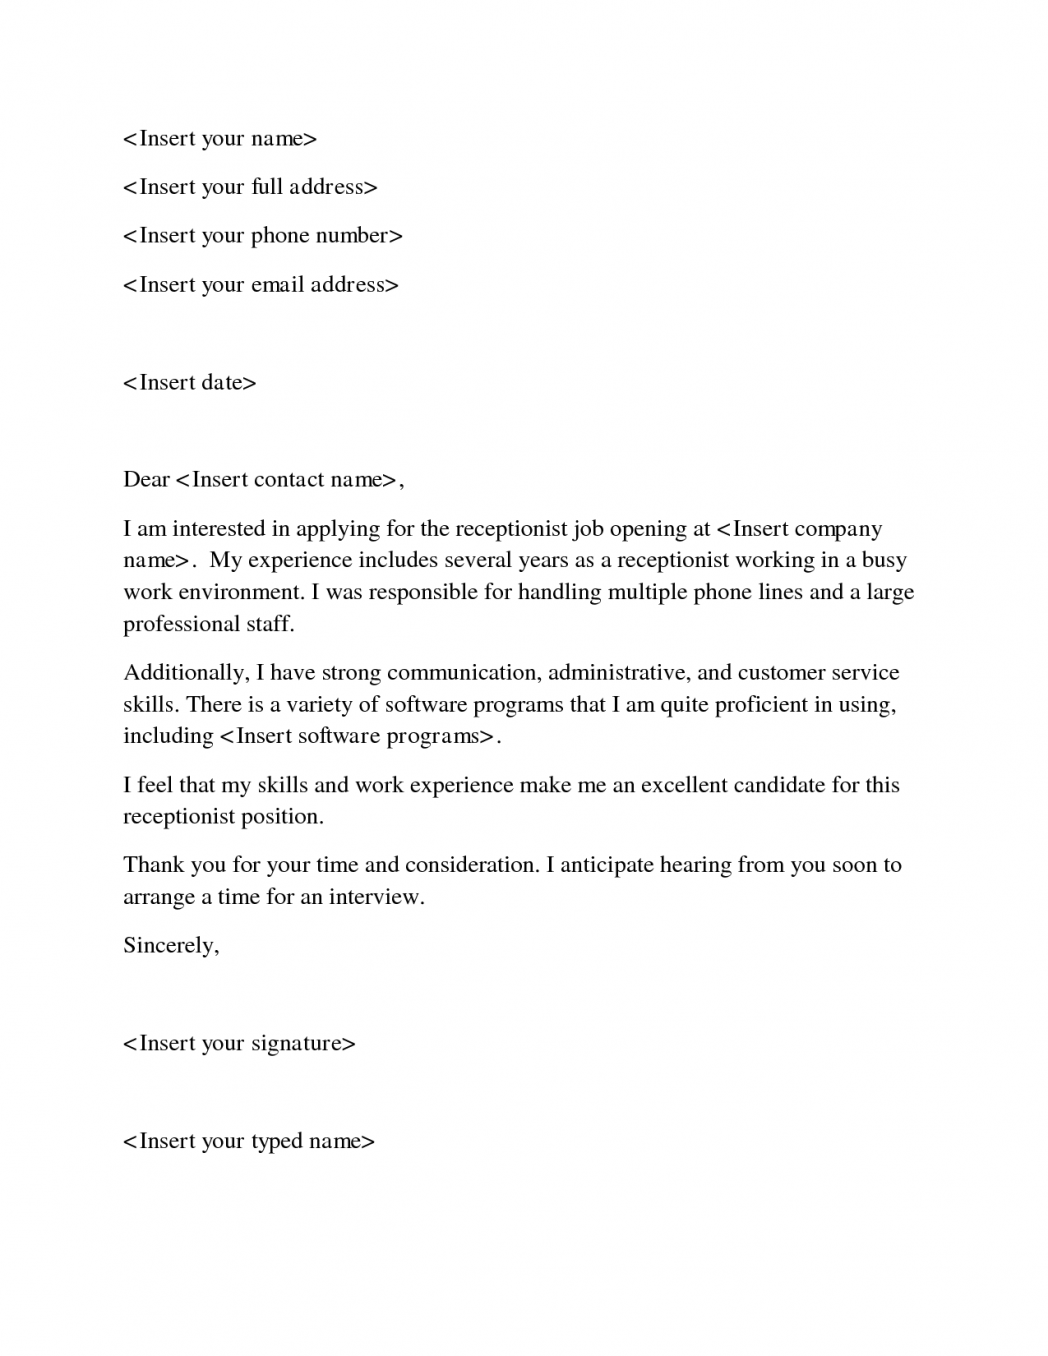 006 Essay Example Social Commentary Simple Cover Letter Help Receptionist Resume Top Ib Analysis Examples Reflective Critical Meta Dreaded Art The Great Gatsby Full